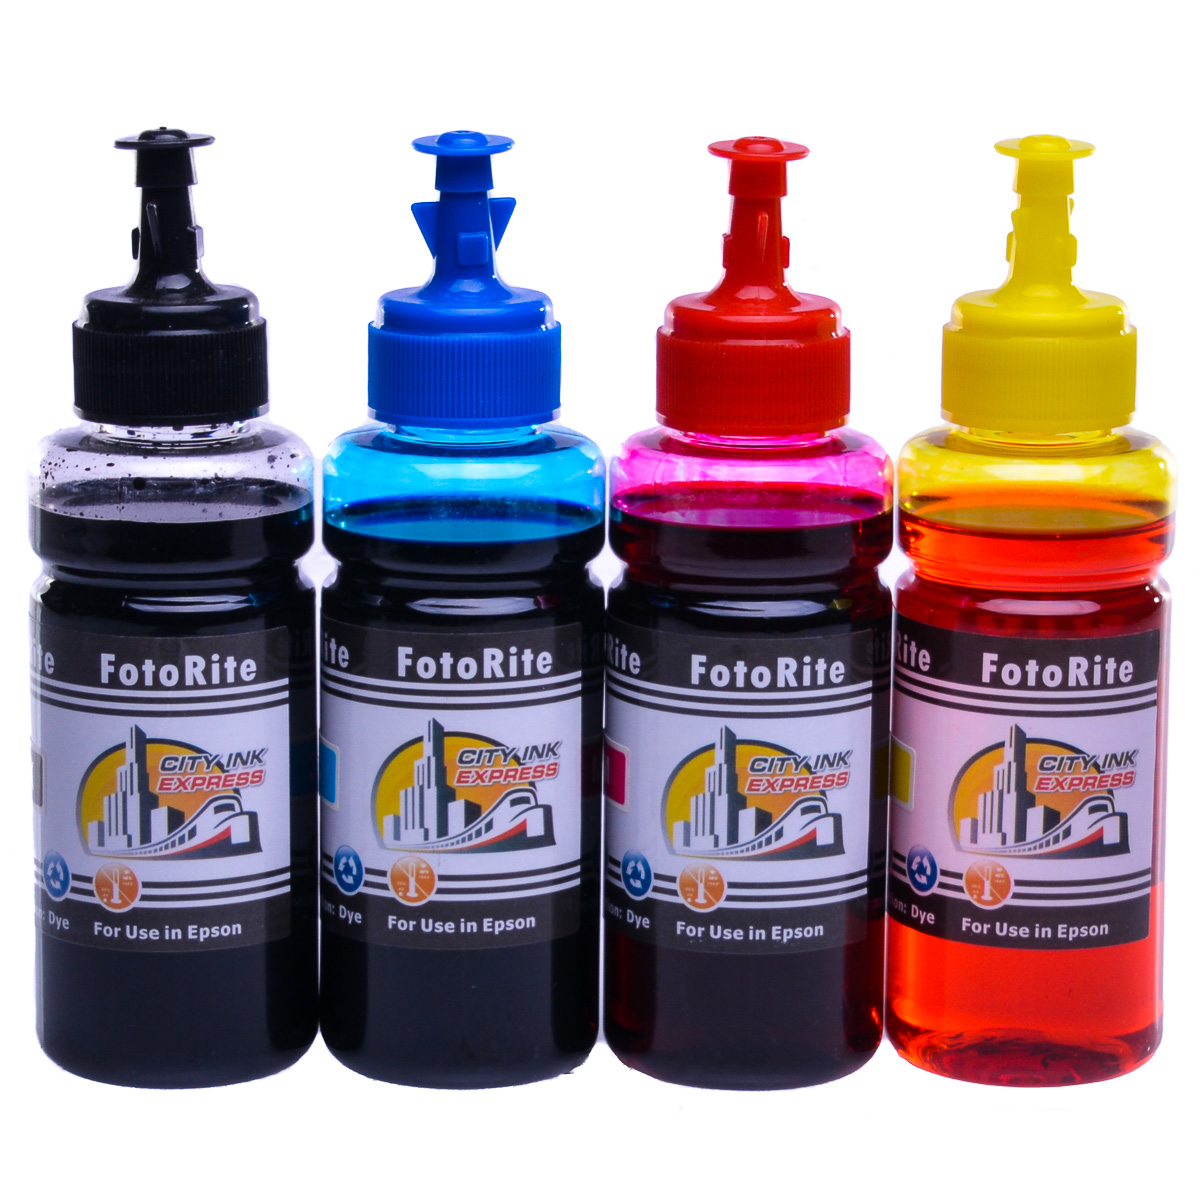 Cheap Multipack dye ink refill replaces Epson L486